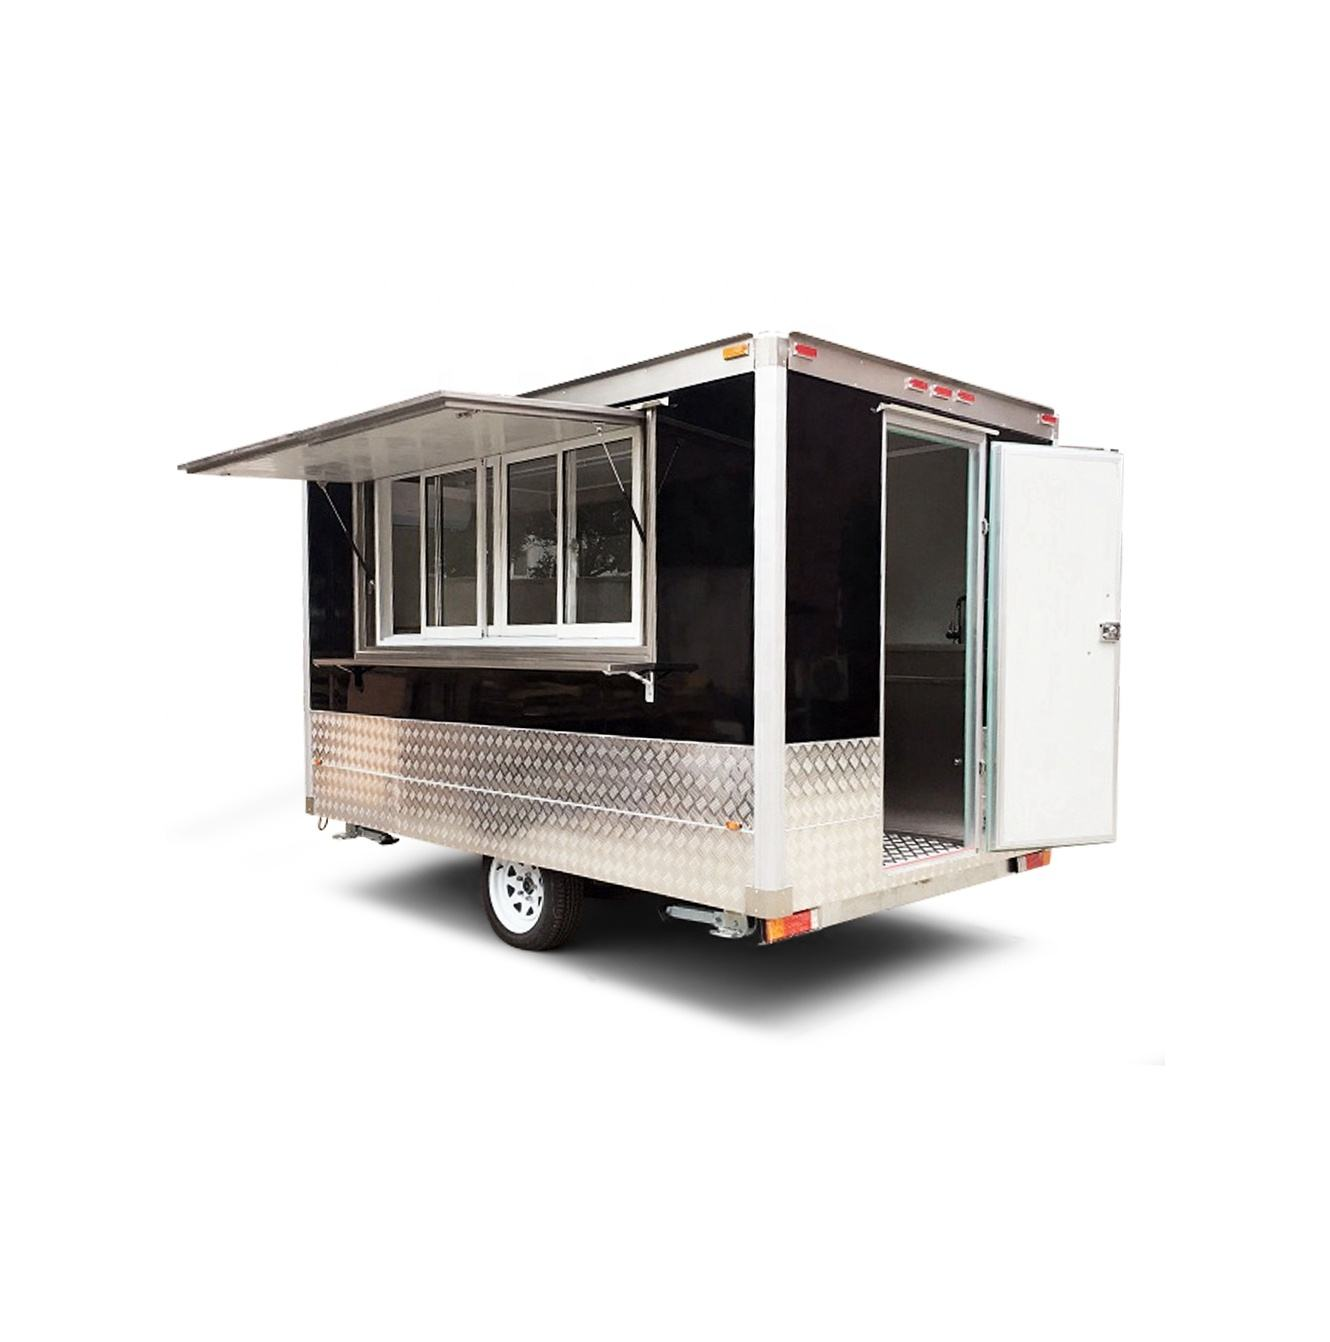 mobile food carts Mobile Stainless Steel Hot Dog Cart/concession trailer/towable food trailer for sale